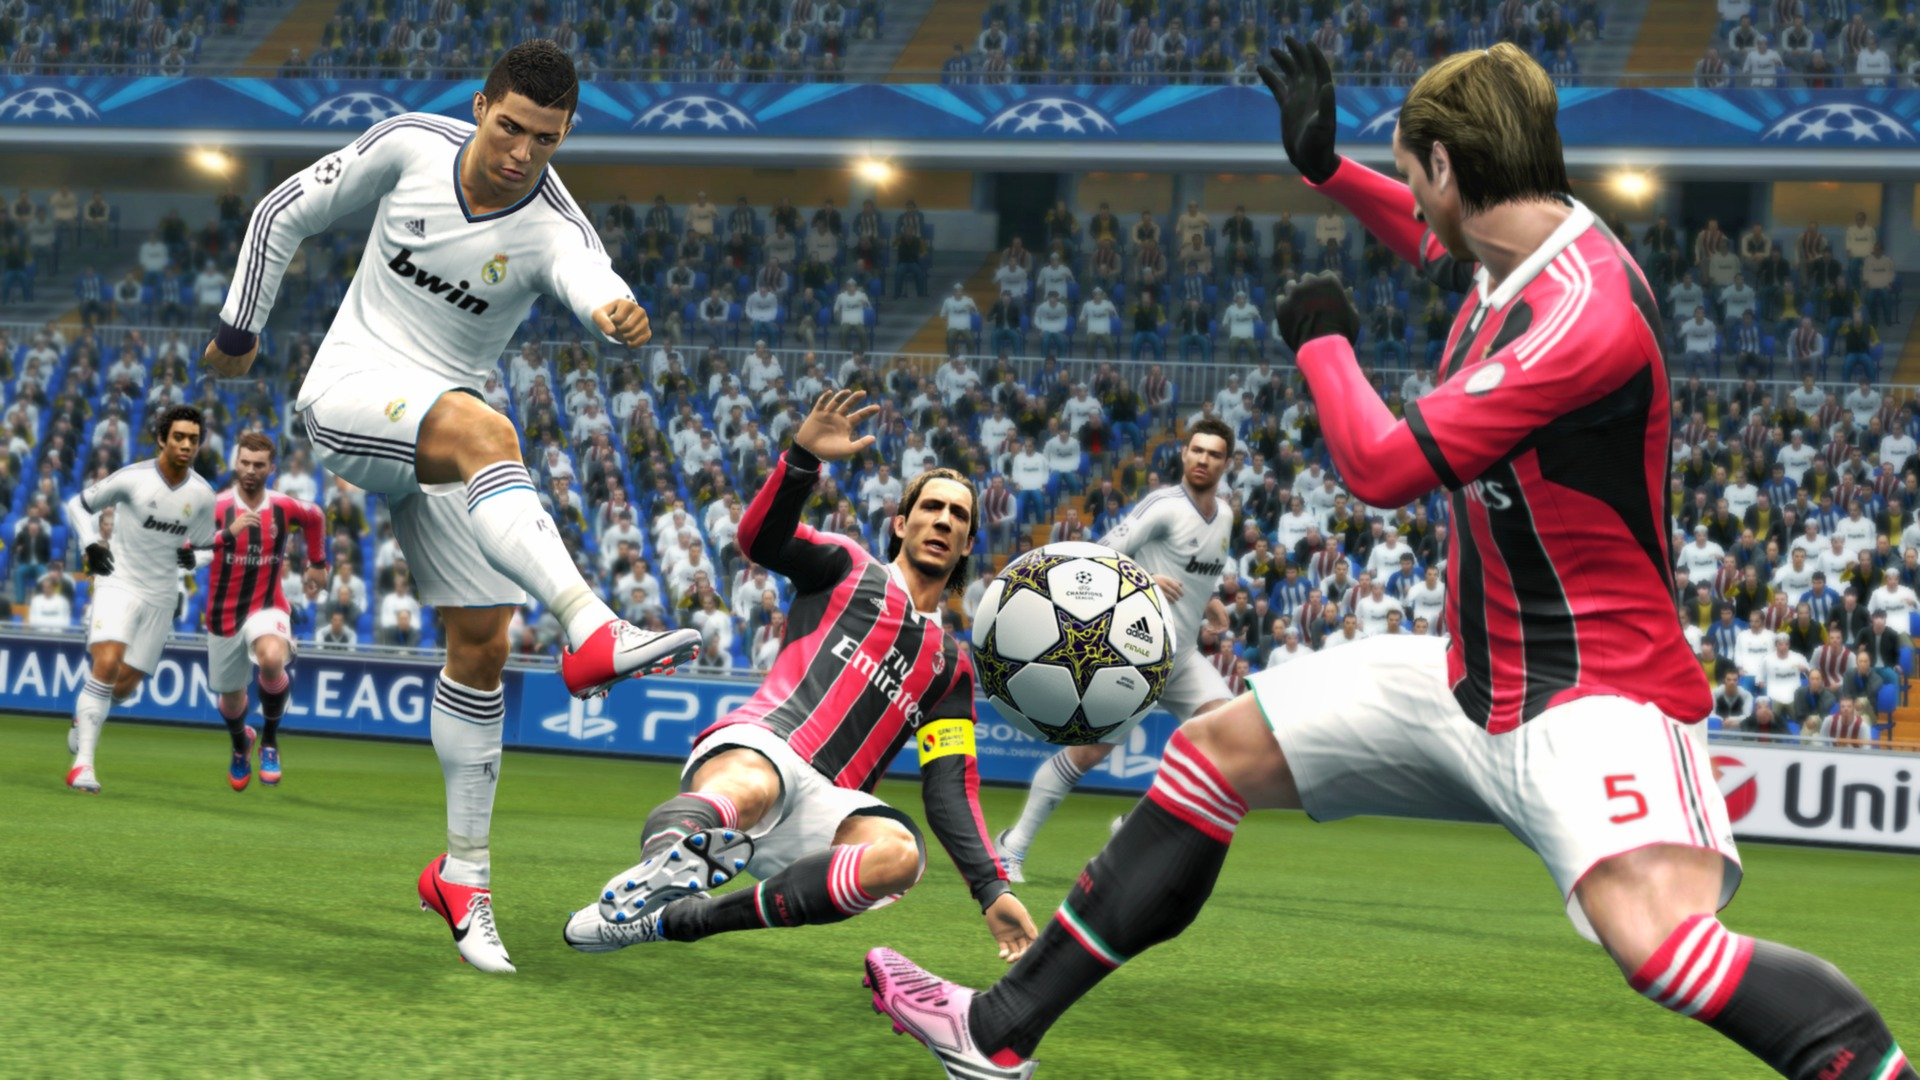 Buy Pro Evolution Soccer 2013 Pes Pc Game Download Dvd Rom 2018 Premium Edition Activation And Via Direct Full Details Will Be Specified In The Email After Purchase